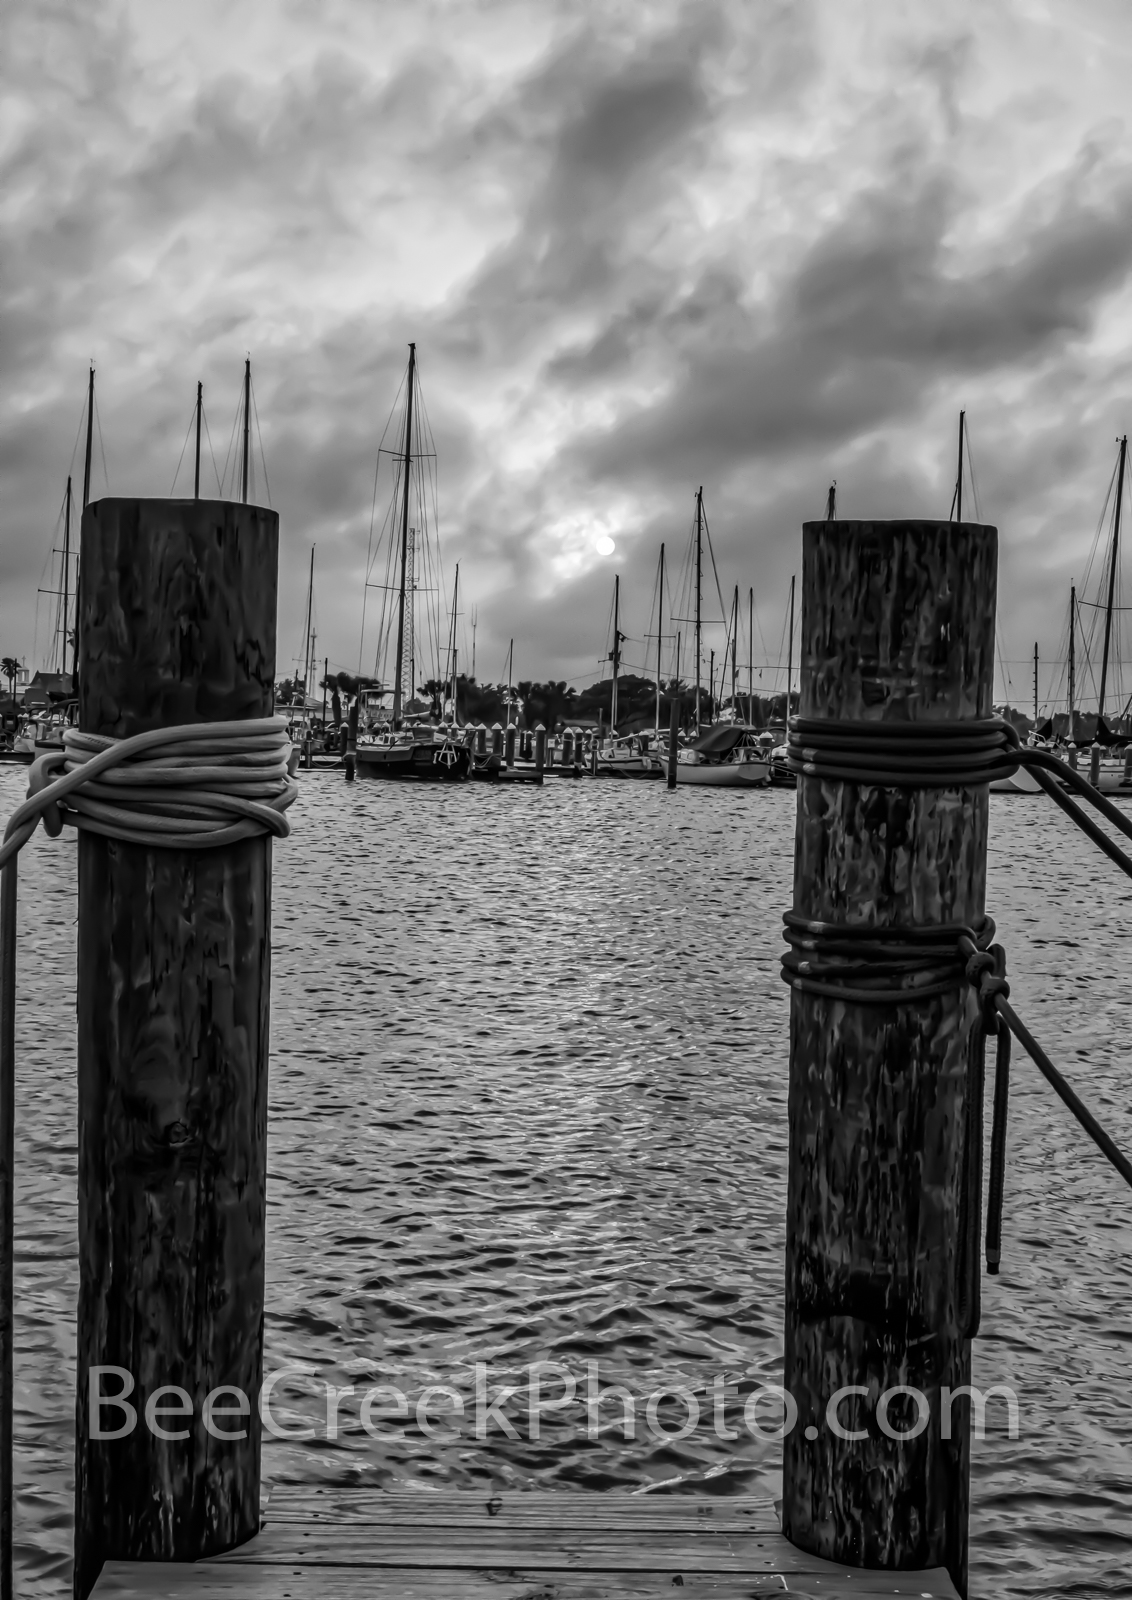 texas coast, coastal, b w, black and white, waterscape, seascape, oceanscape, slips, boats, sailboat, marina, clouds, sunset, moody, skies, sky, ropes, rockport, texas, texas coast, coast, vertical, ,, photo